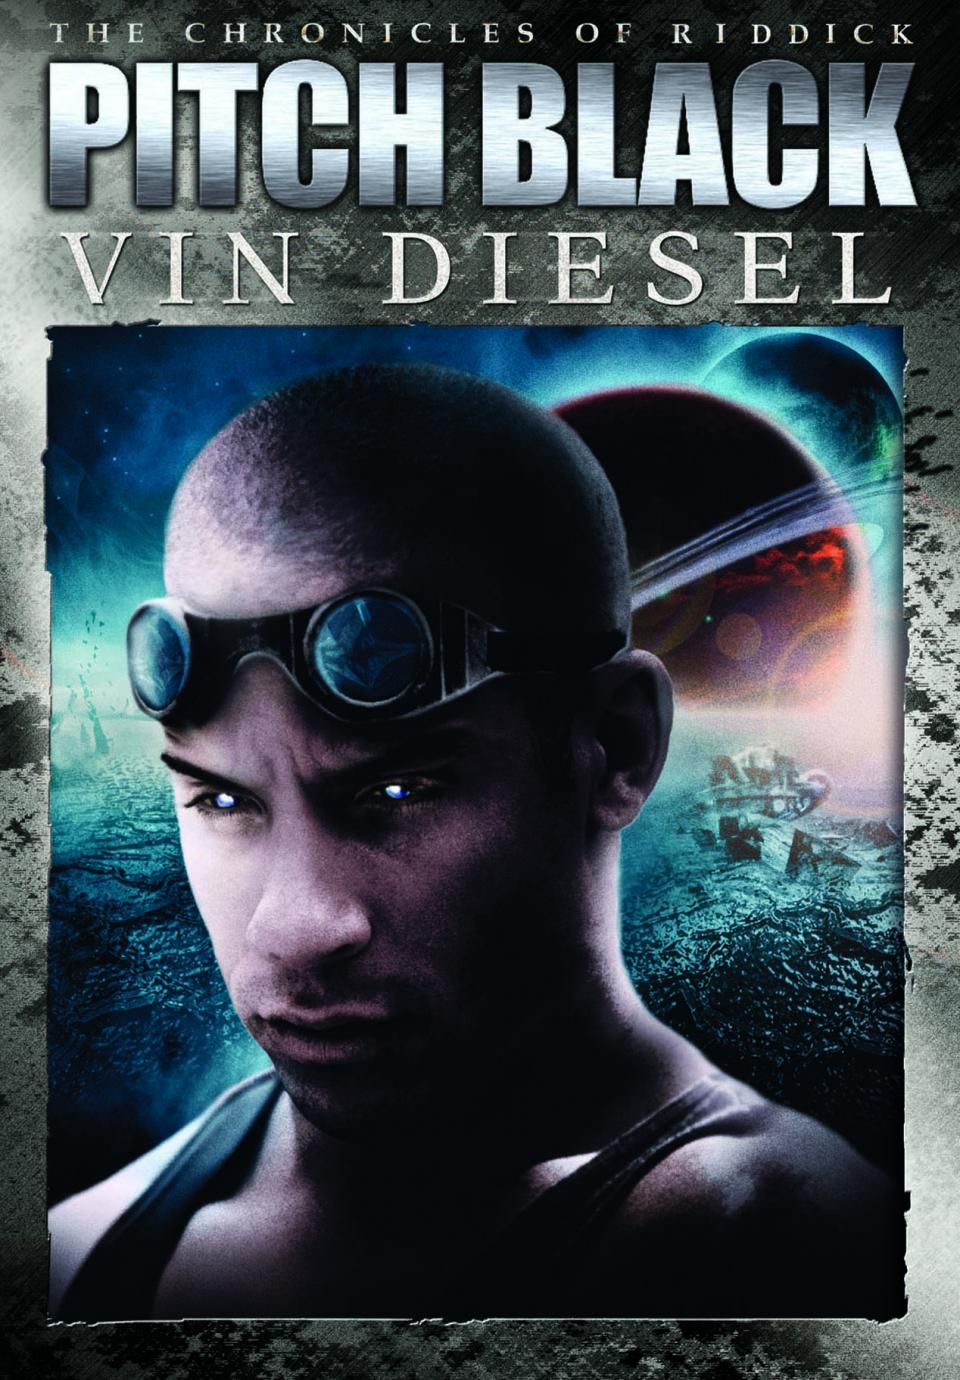 Riddick is an interesting character even if the story as a whole spaceship crash lands on a deserted planet filled with creatures which slowly kill